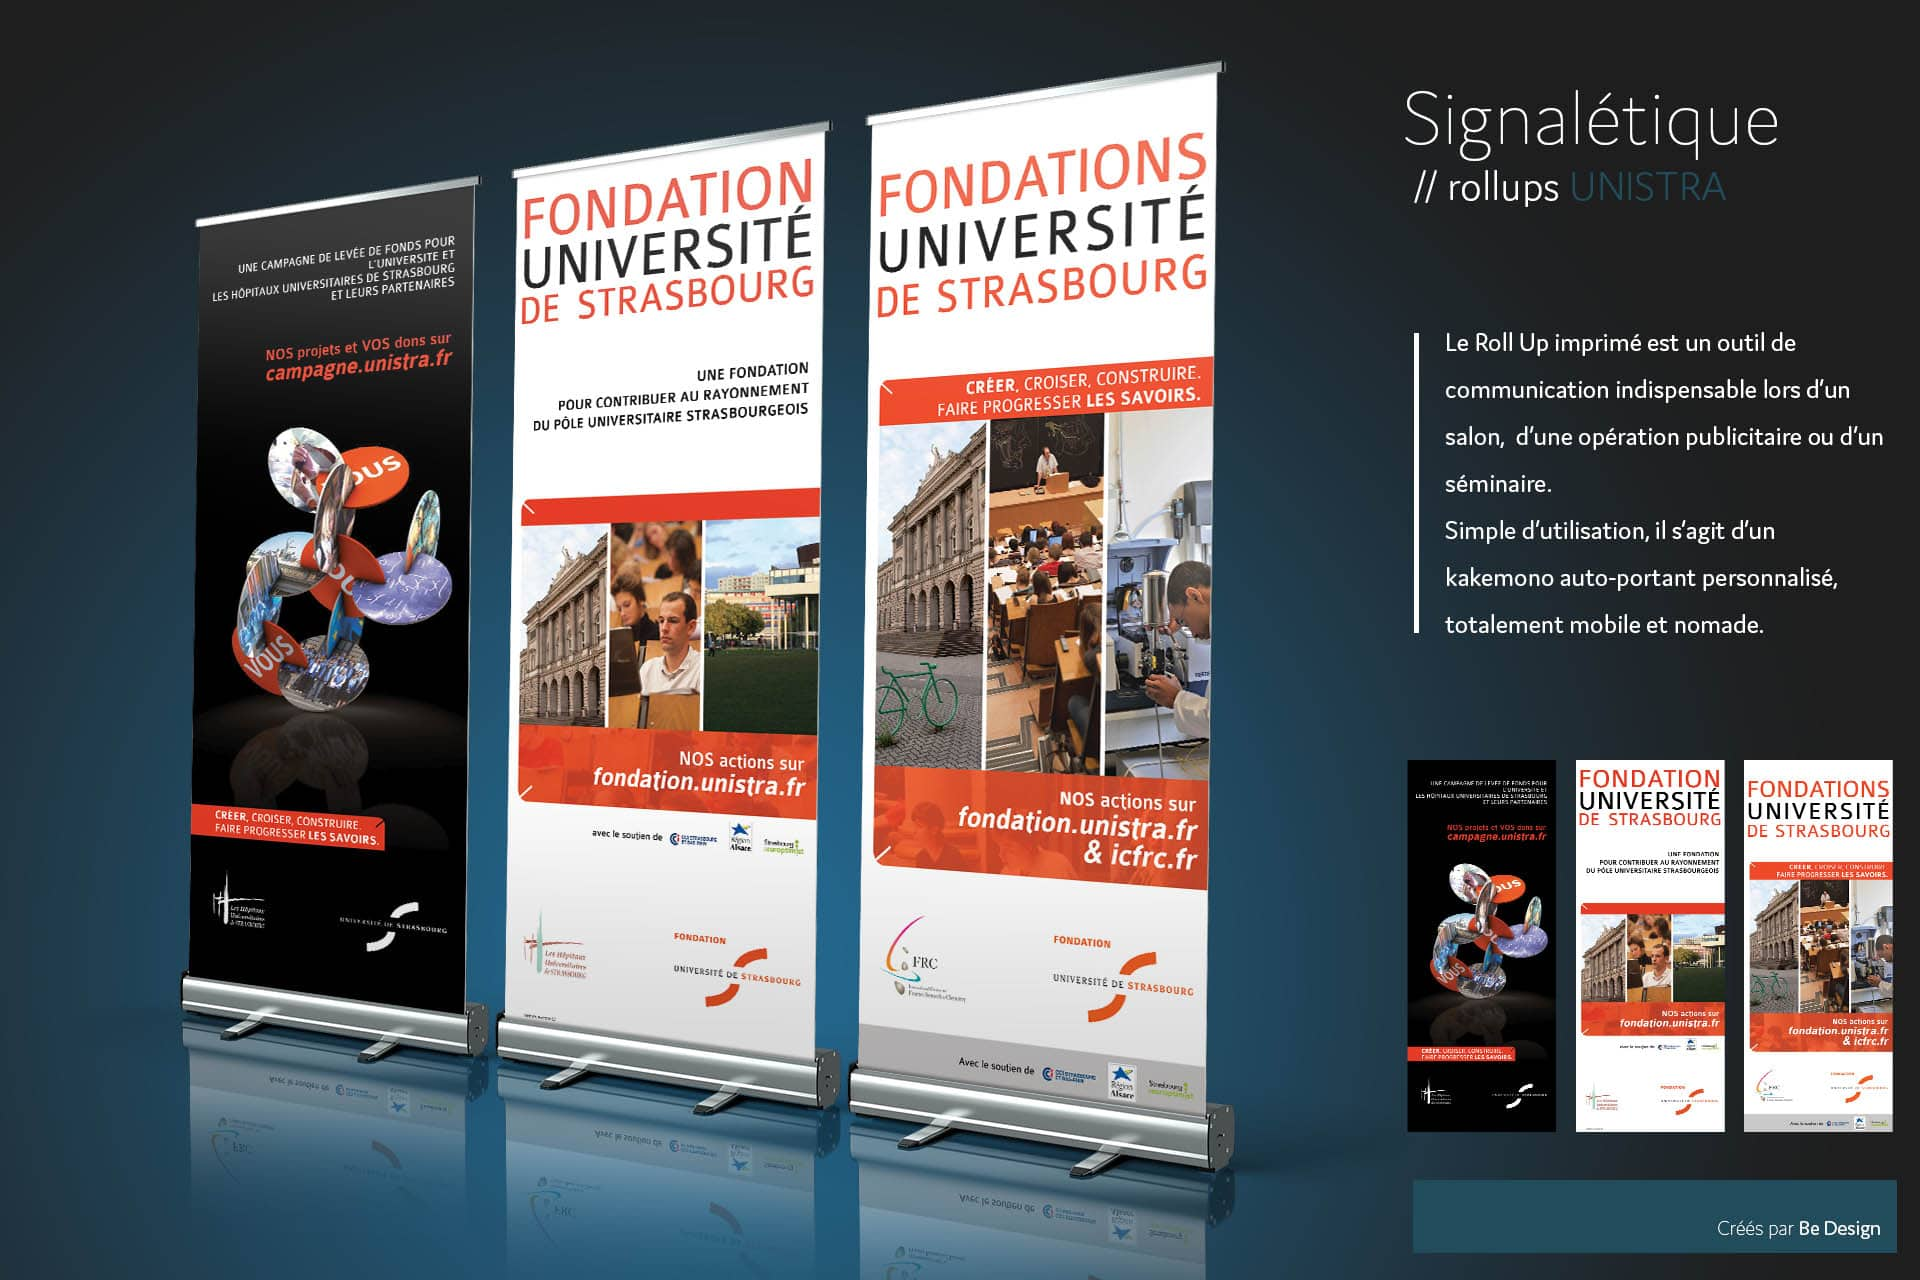 rollup_Unistra